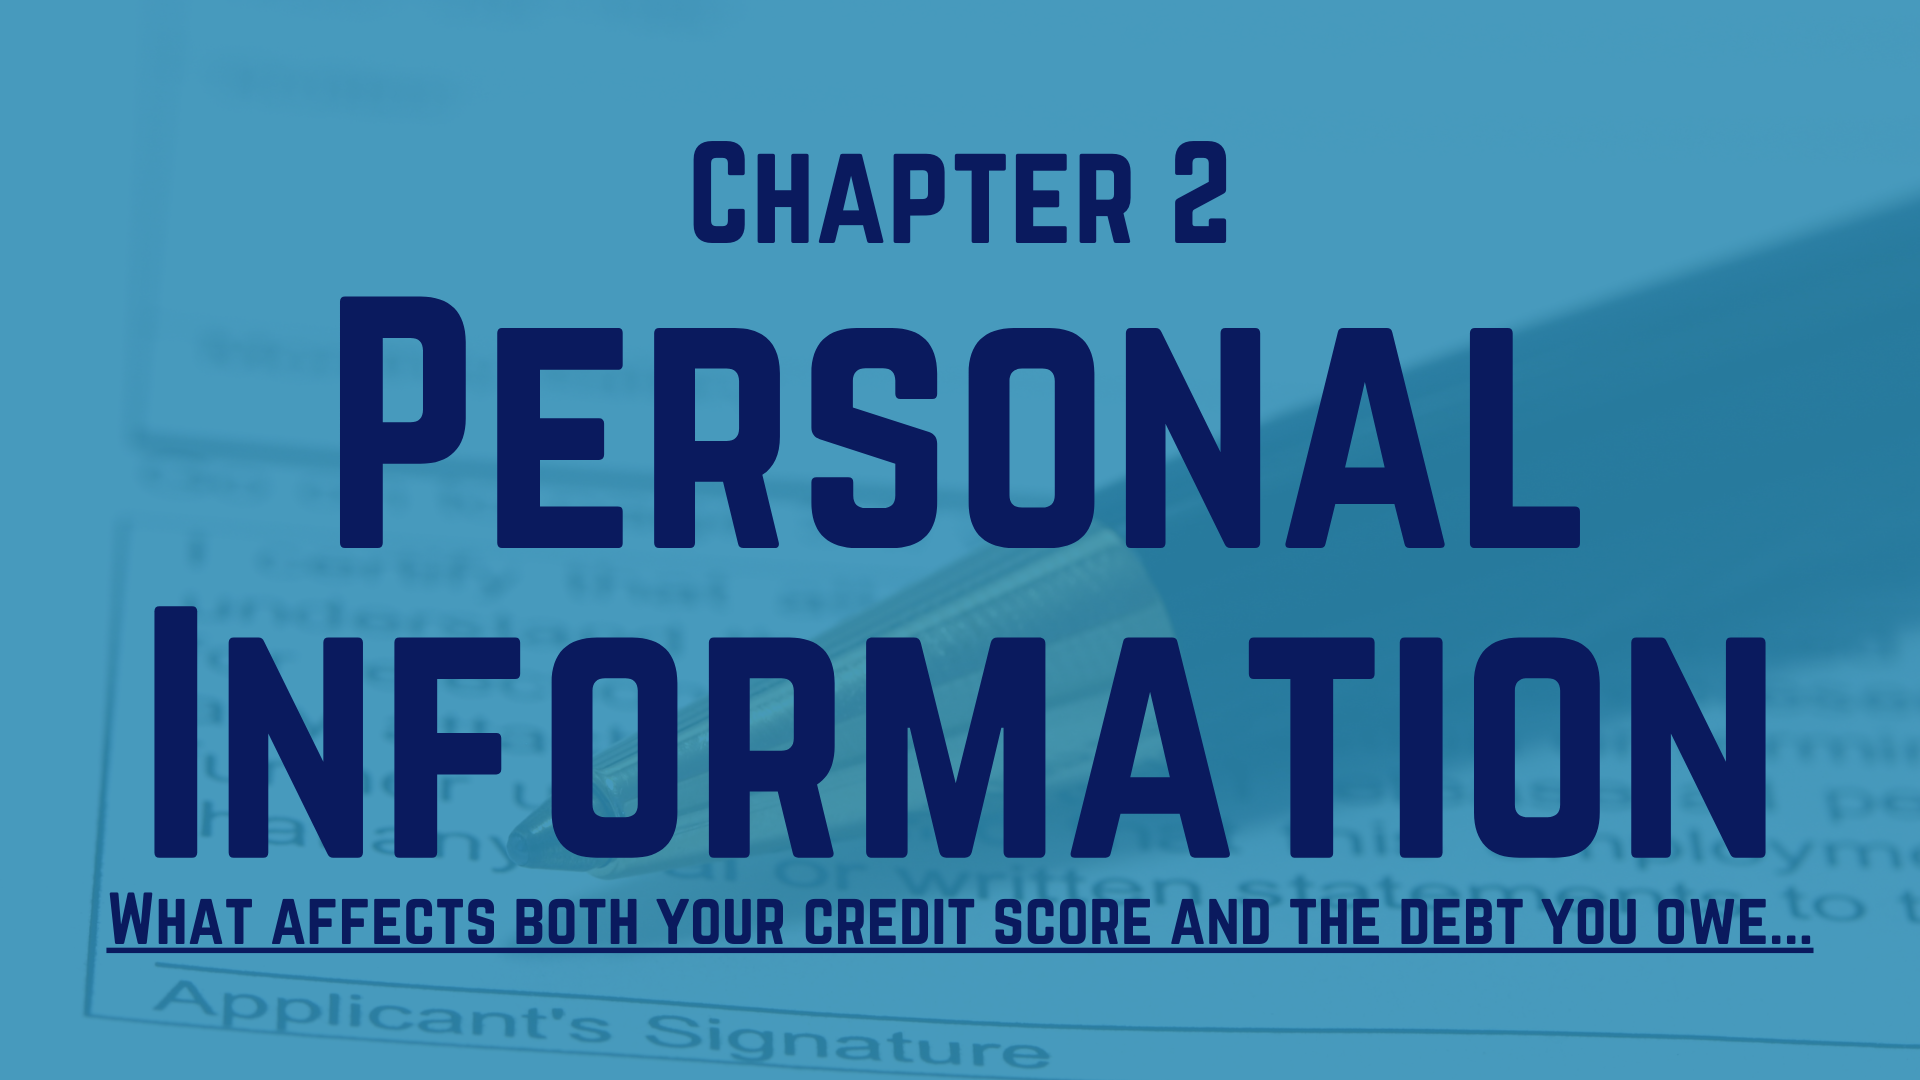 Ch 2 - Personal Information